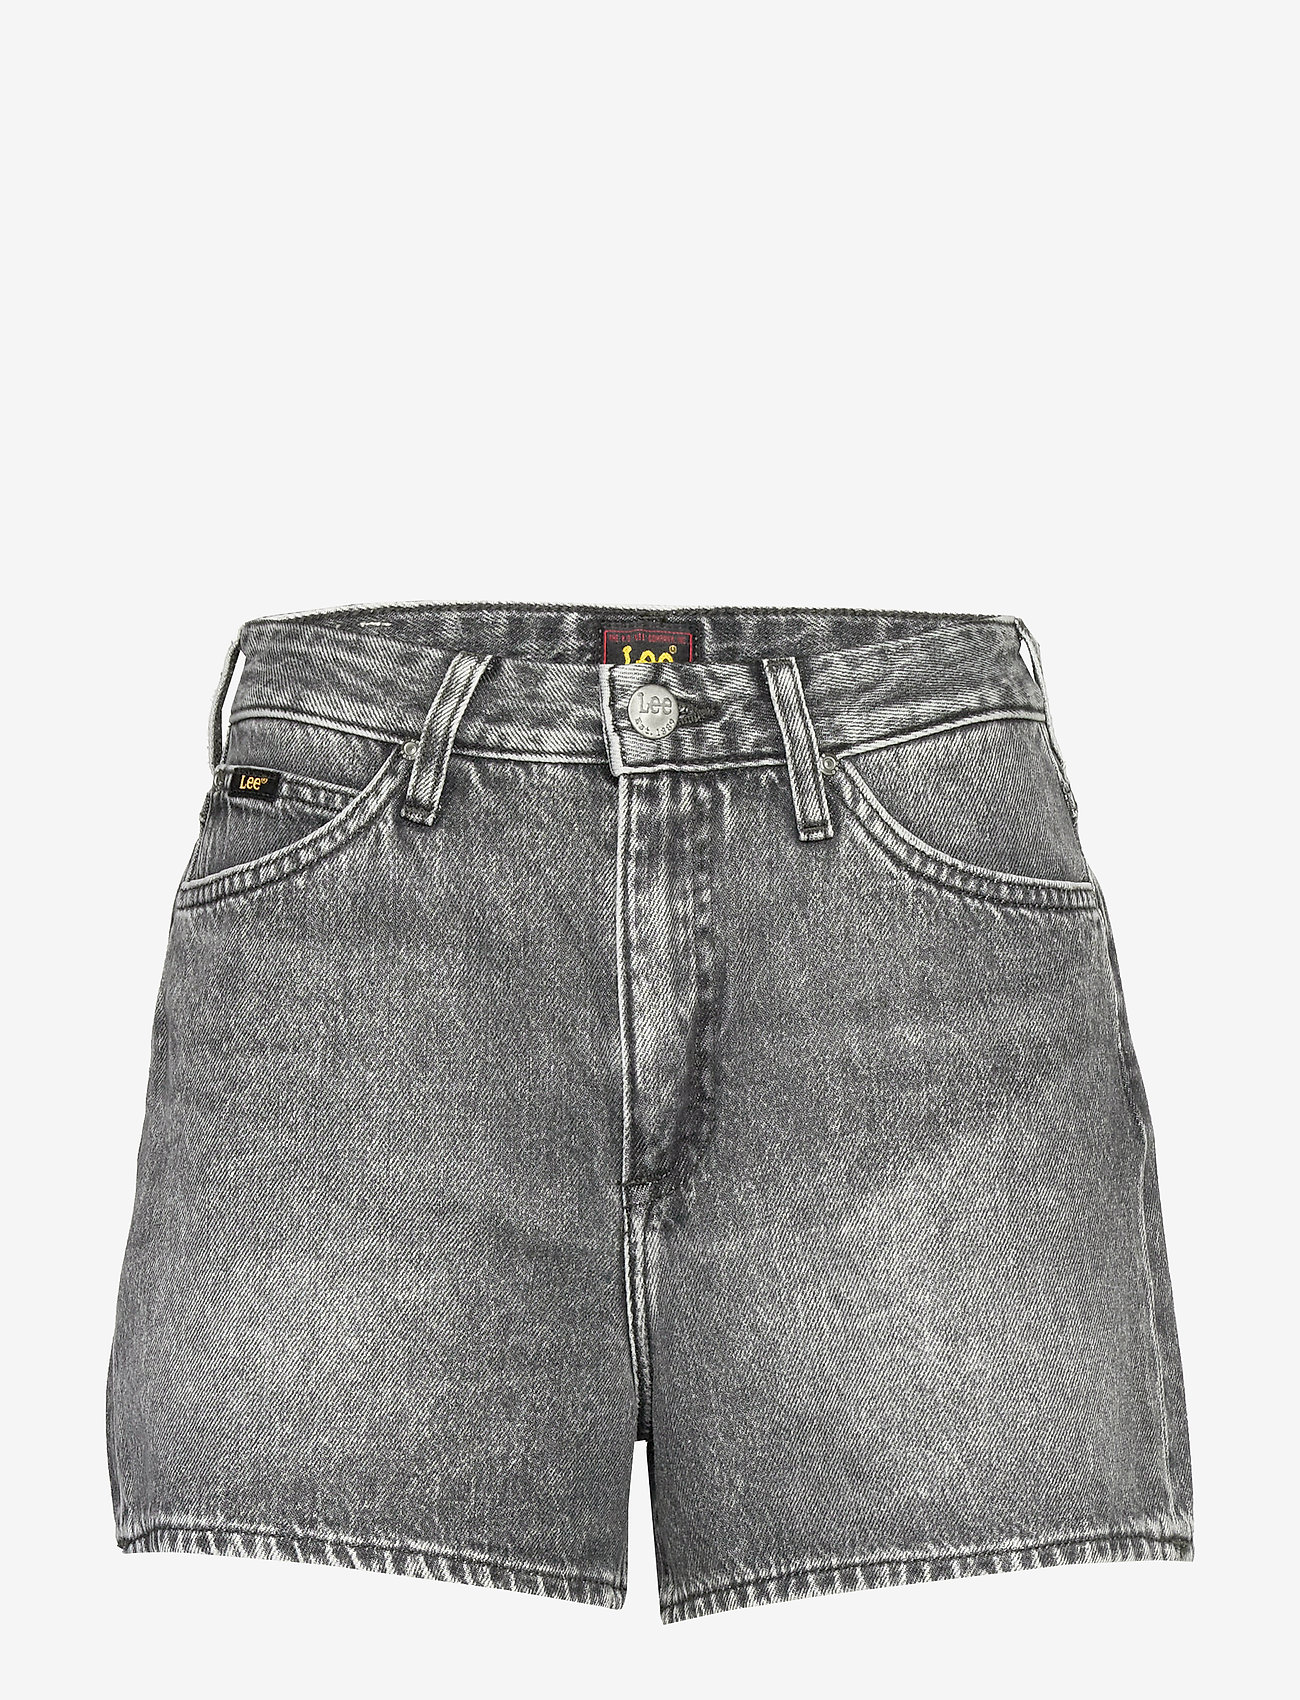 Lee Jeans - THELMA SHORT - denimshorts - grey sarandon - 0